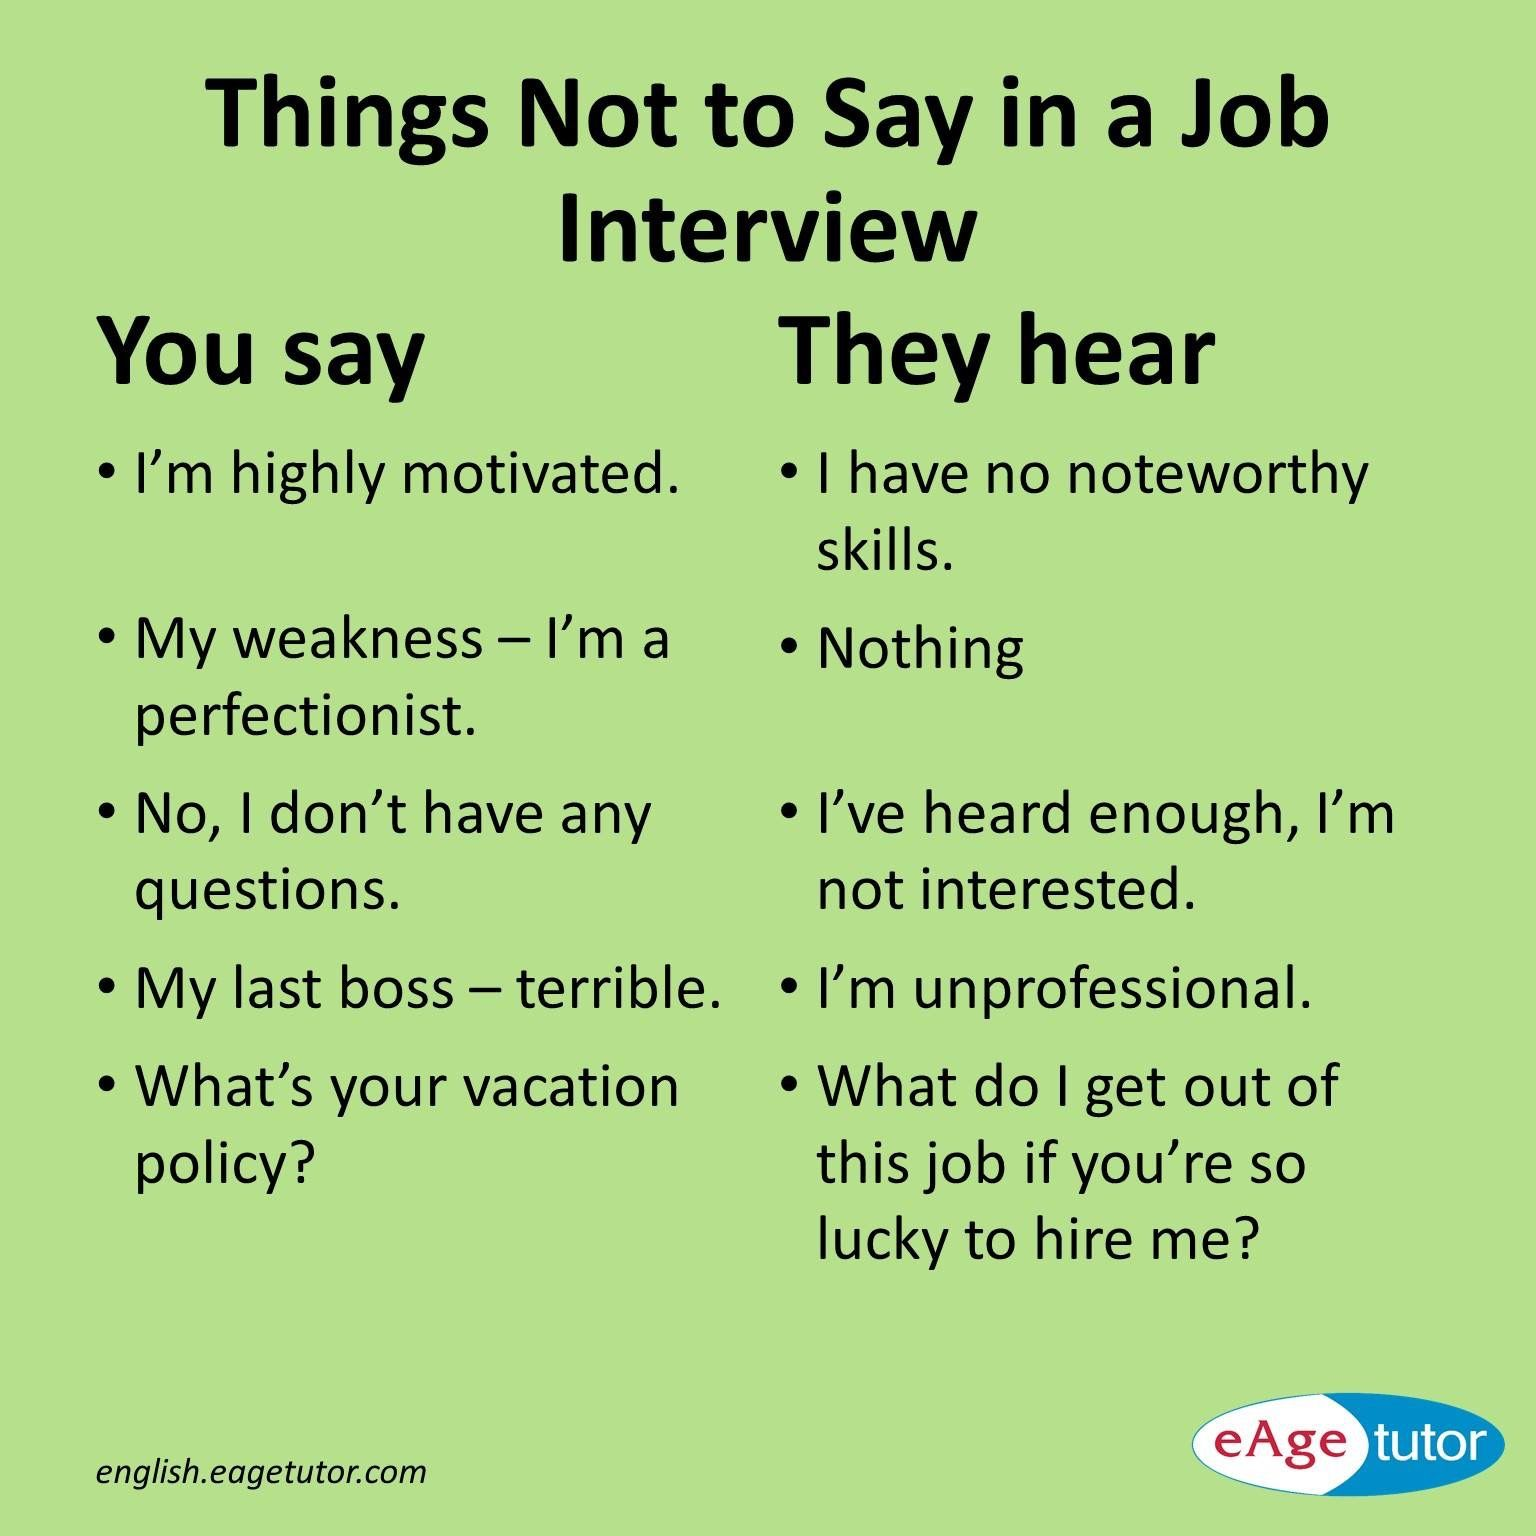 Things Not To Say In A Job Interview